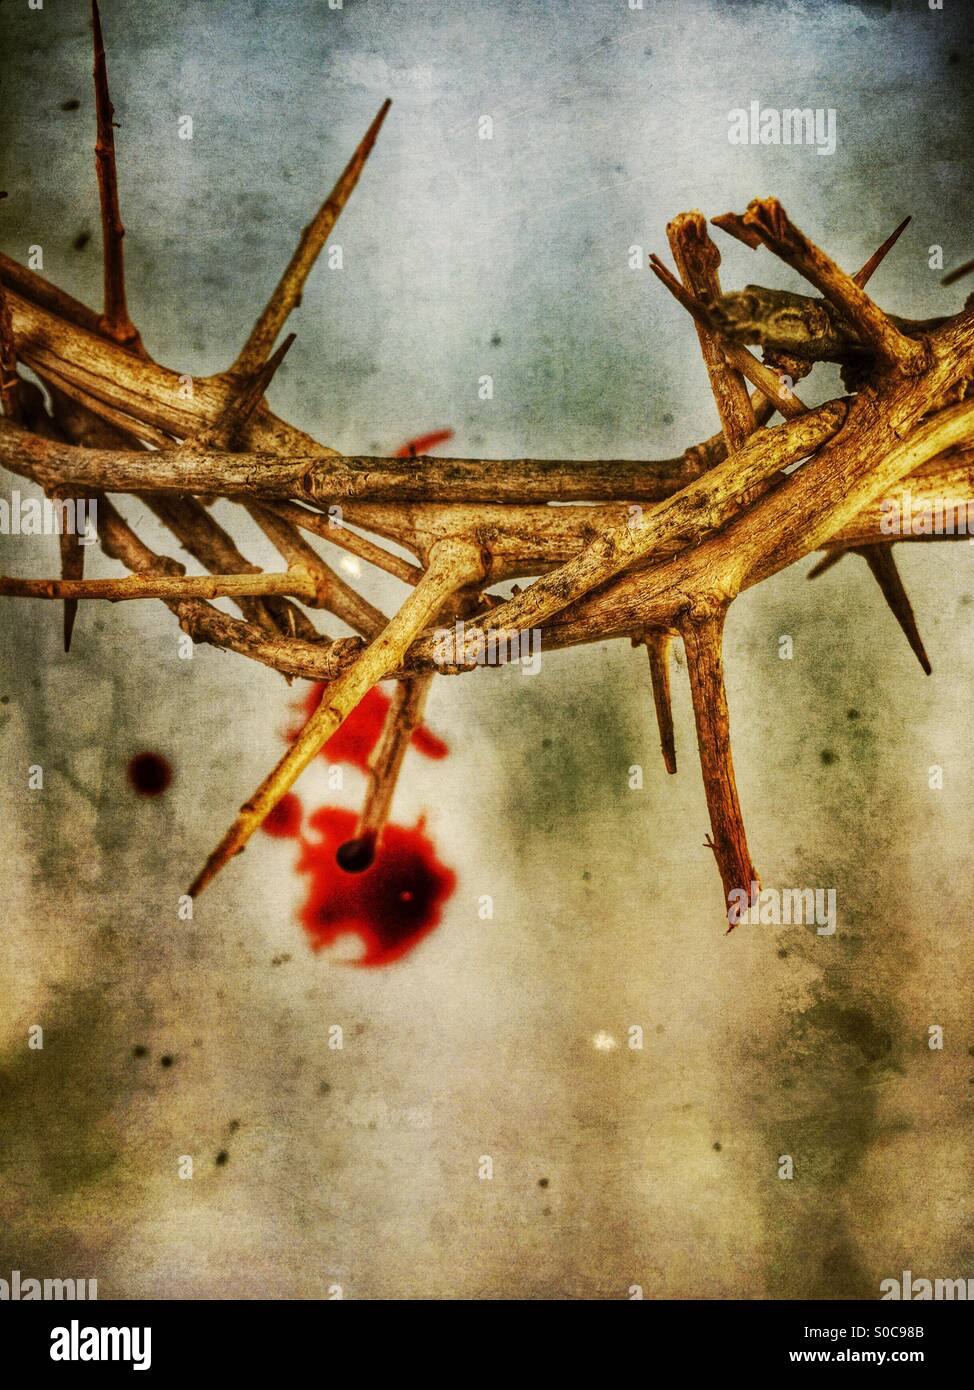 Crown of thorns with blood drops. - Stock Image